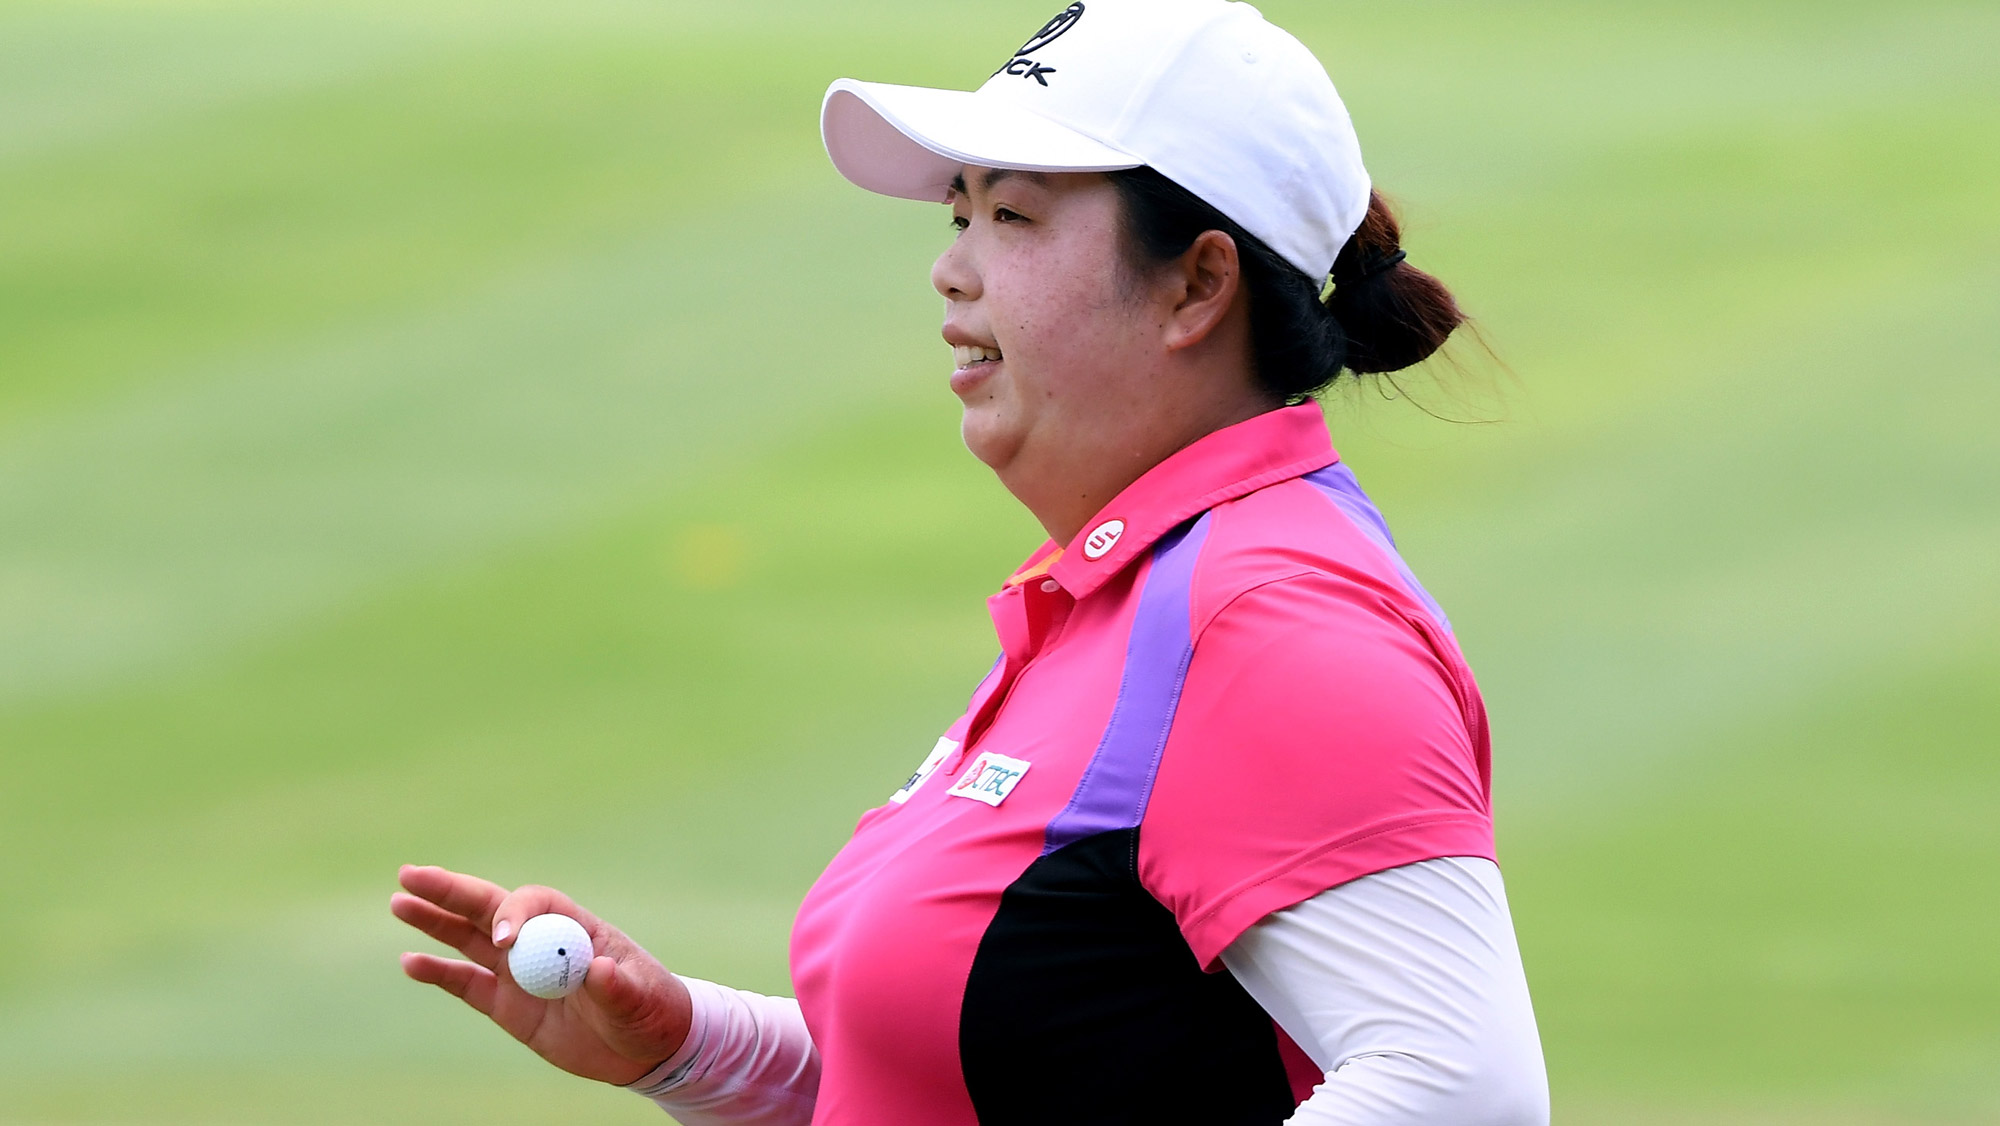 Shanshan Feng Posts a 67 in Round One